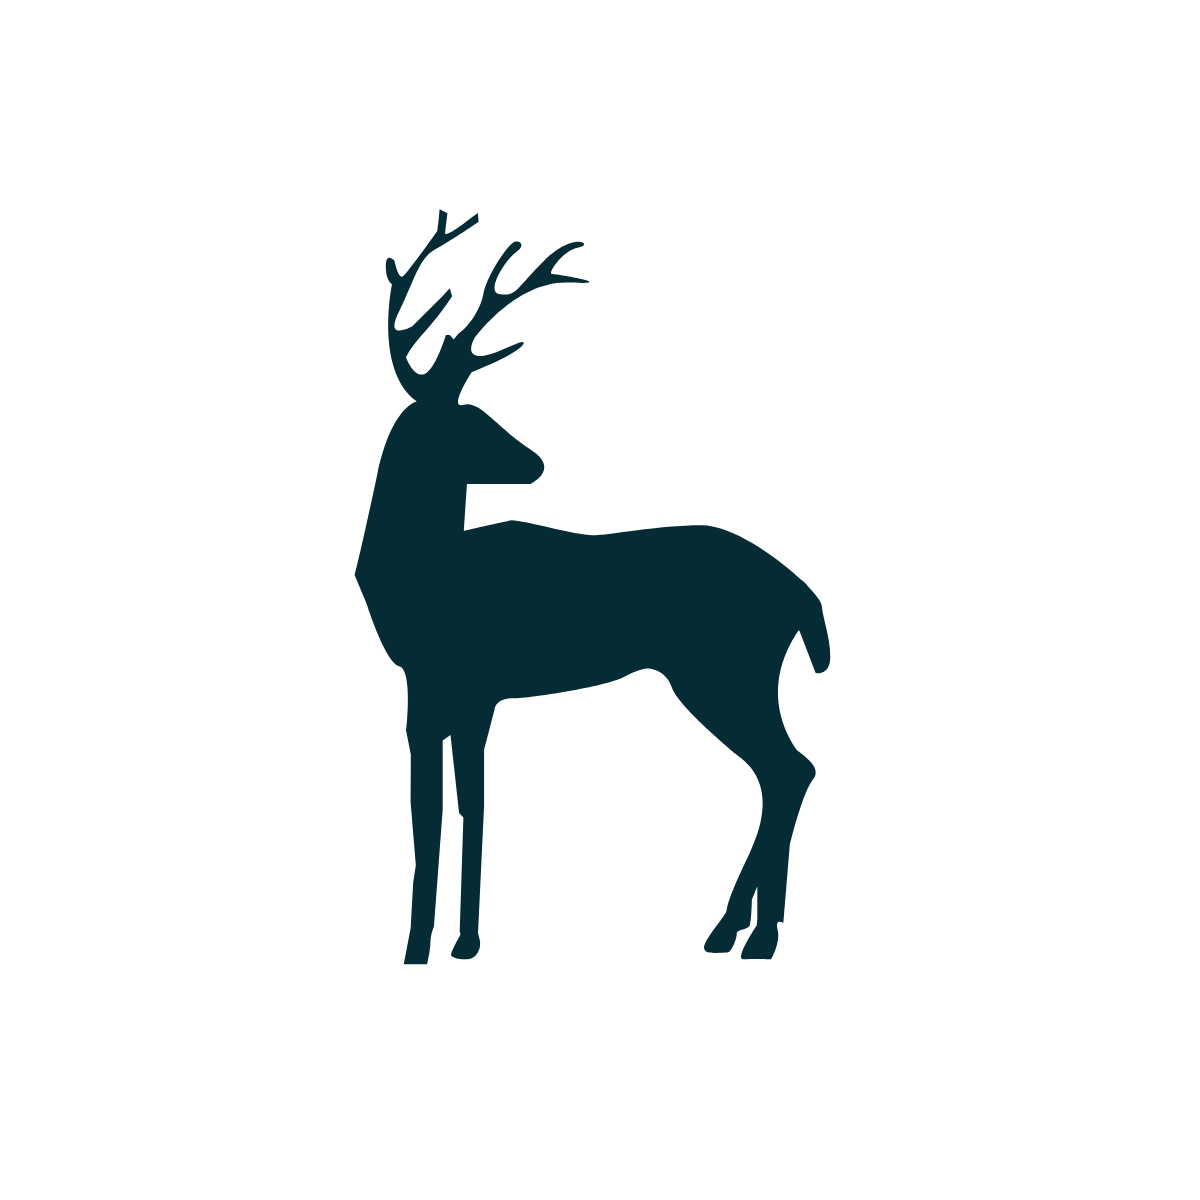 Icon of a deer